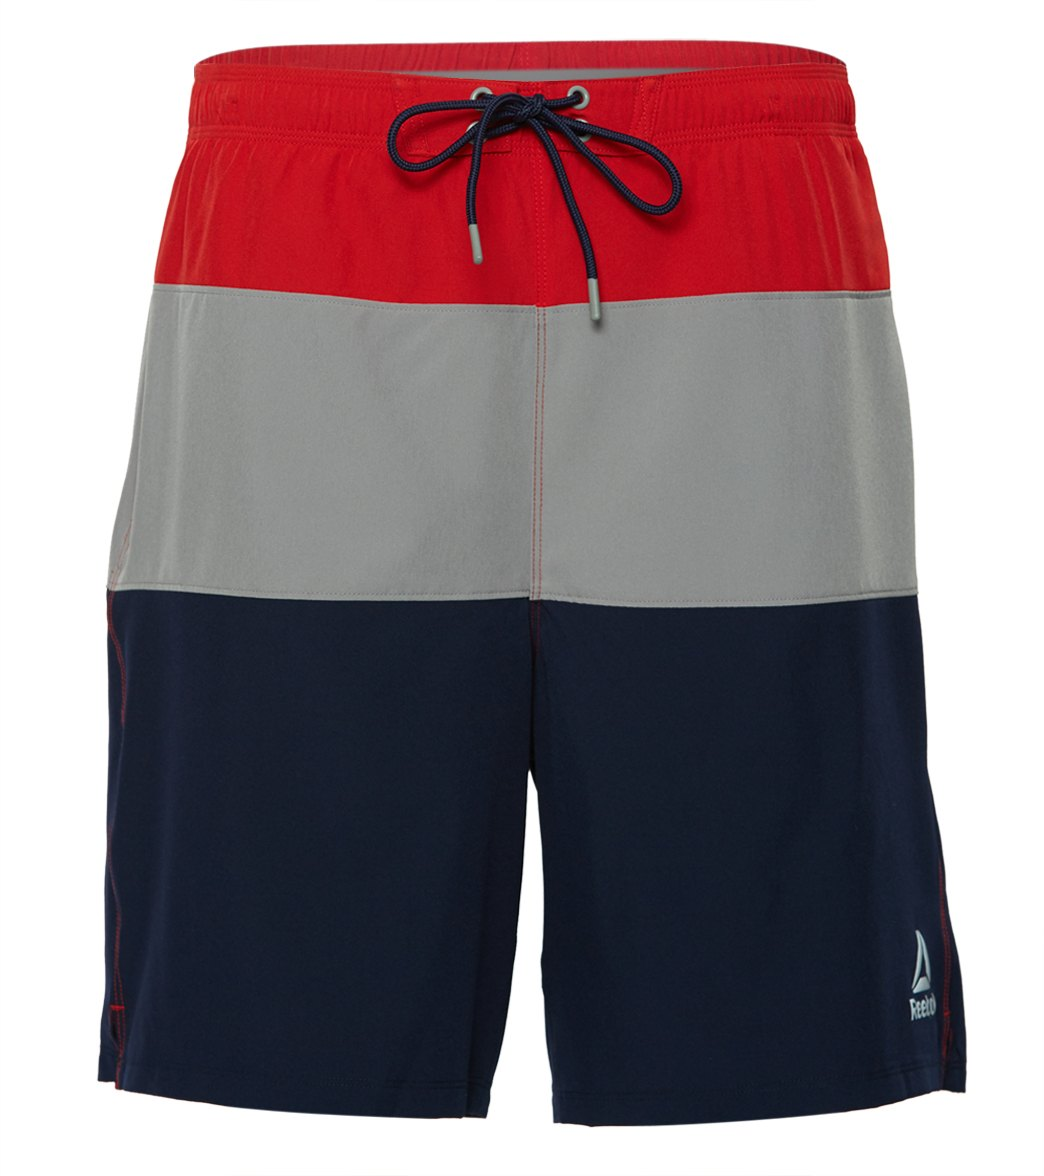 7432660ef1 Reebok Blockhe 20 Volley Shorts At Swimoutlet Shipping